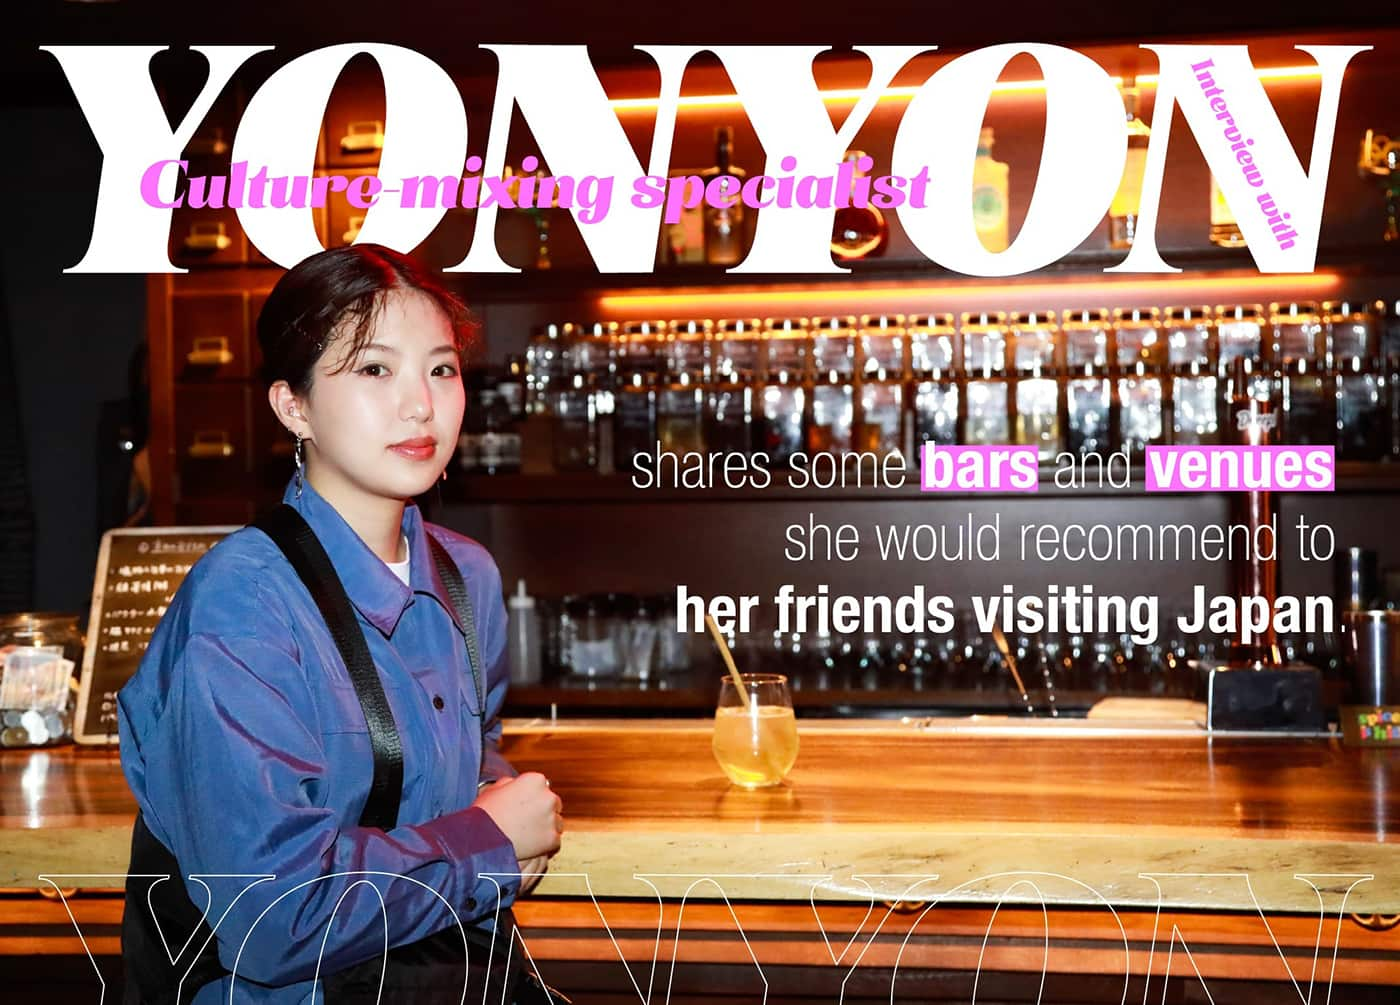 Recommended places by Yon Yon, a DJ working borderless